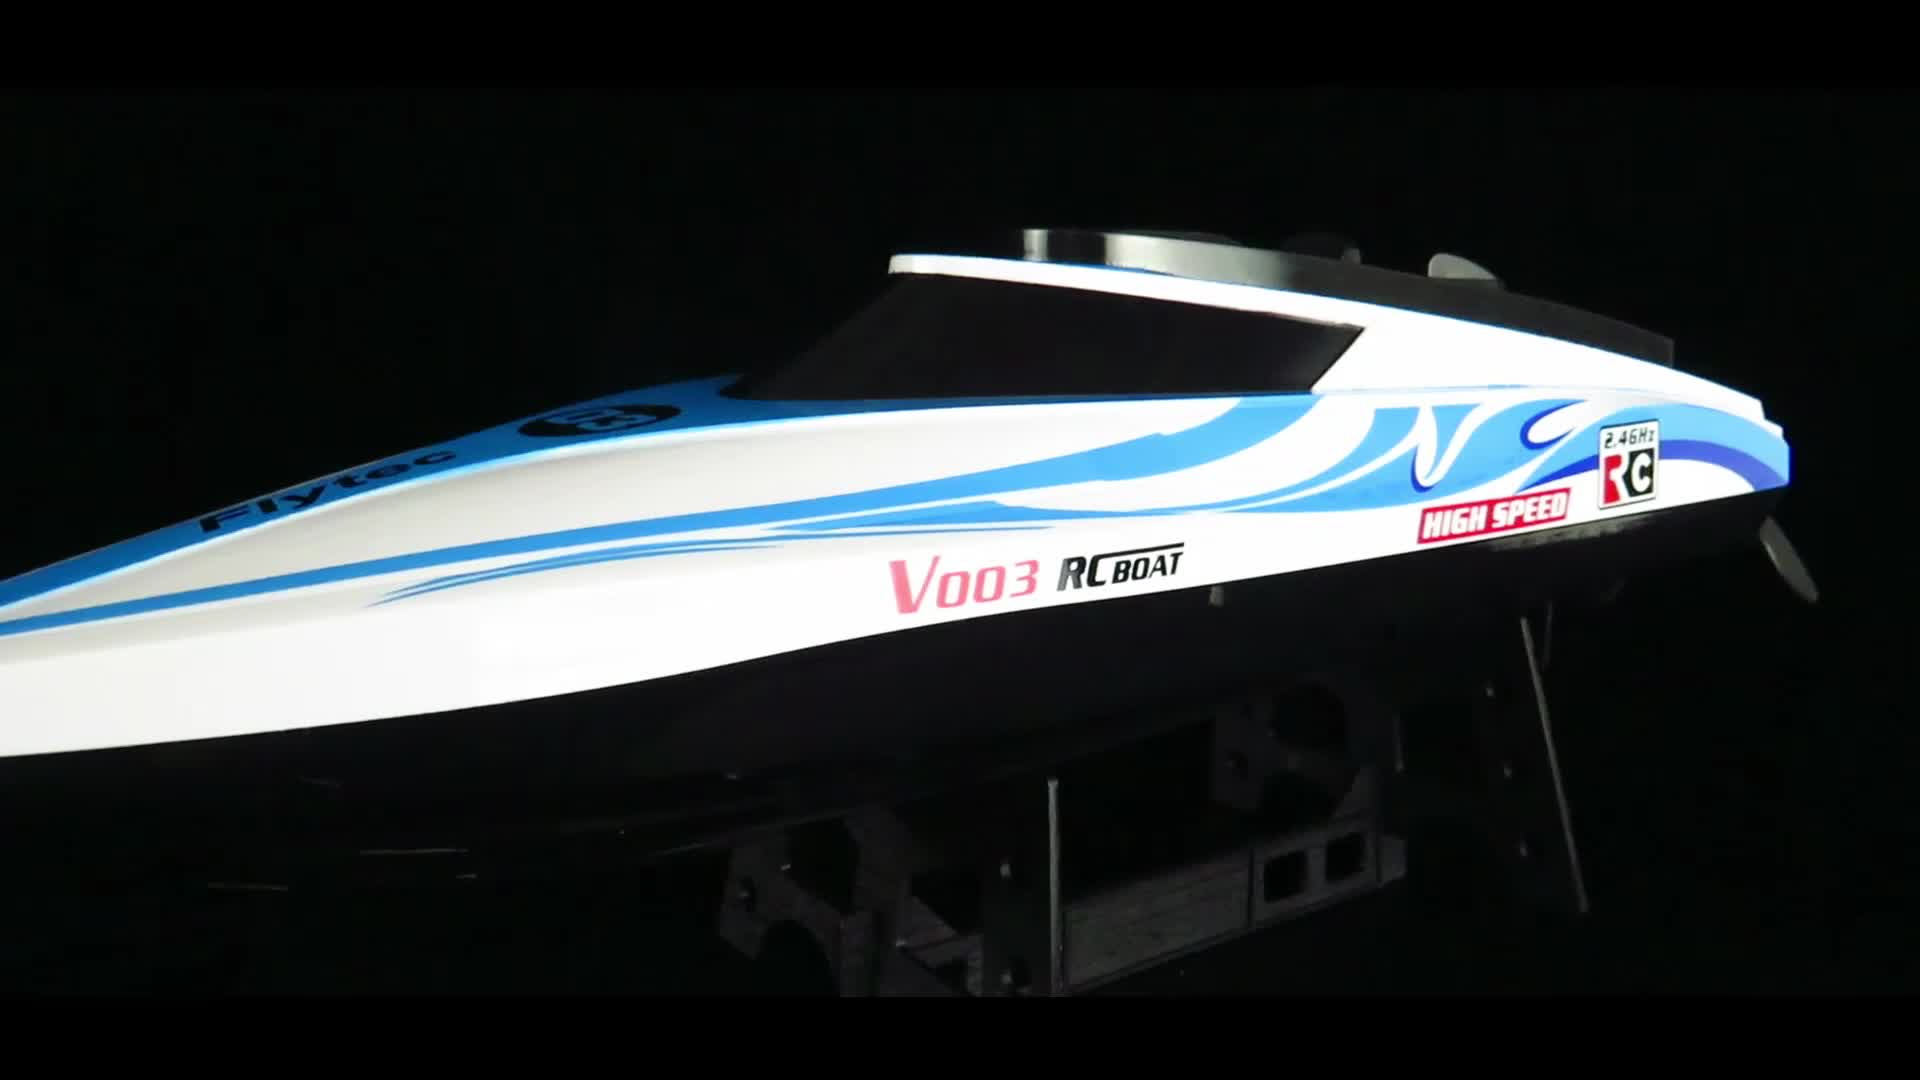 New Flytec V003 2.4GHz 30KM/h Speed Boat With Water Cooling System Remote Control RC Boat RTR Orange